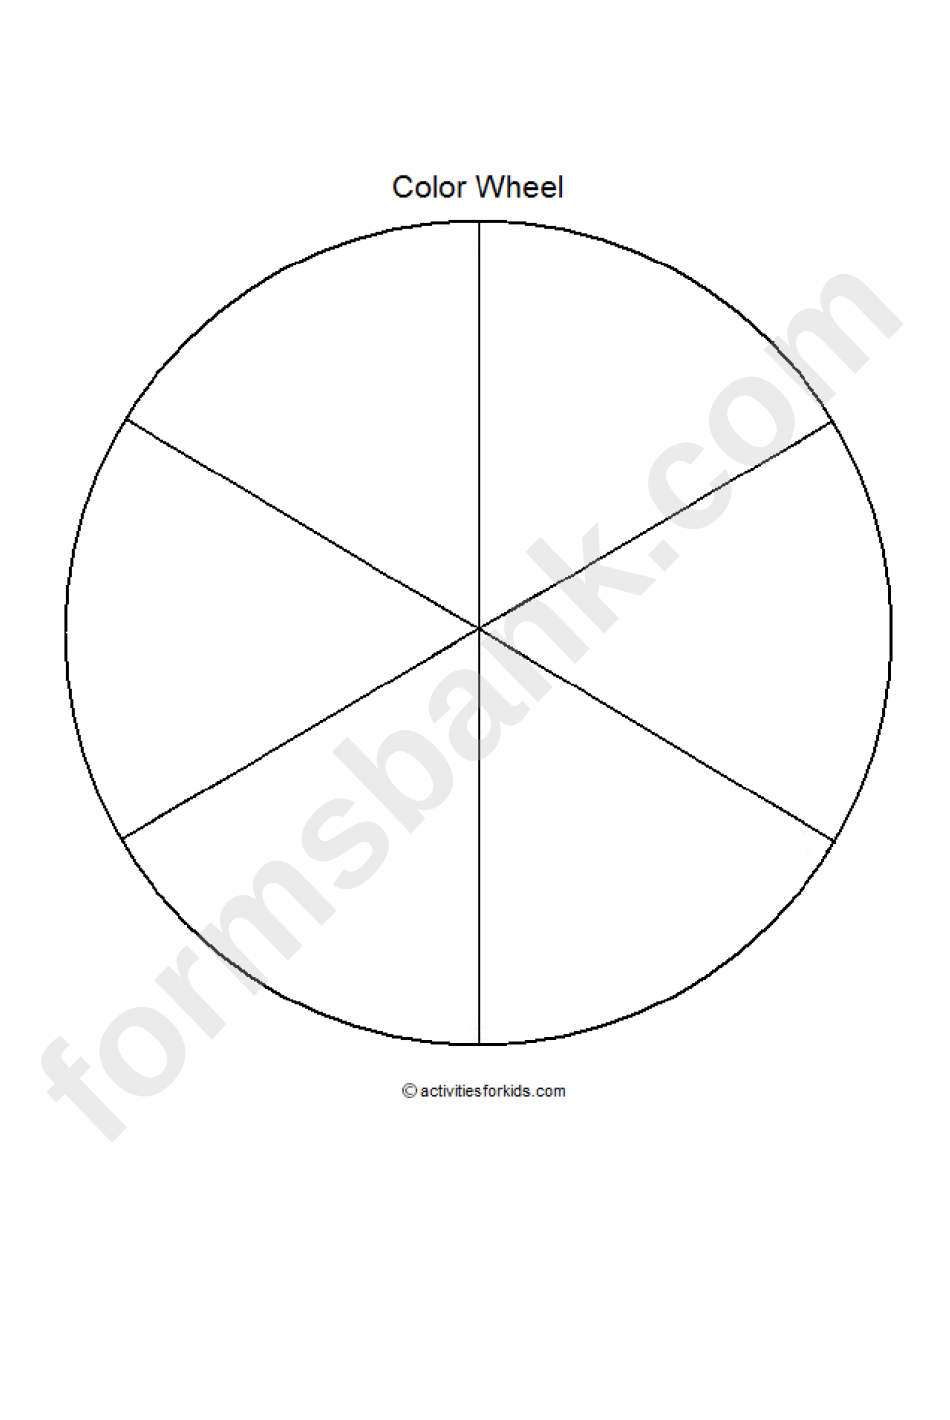 Blank Color Wheel Template Printable Pdf Download